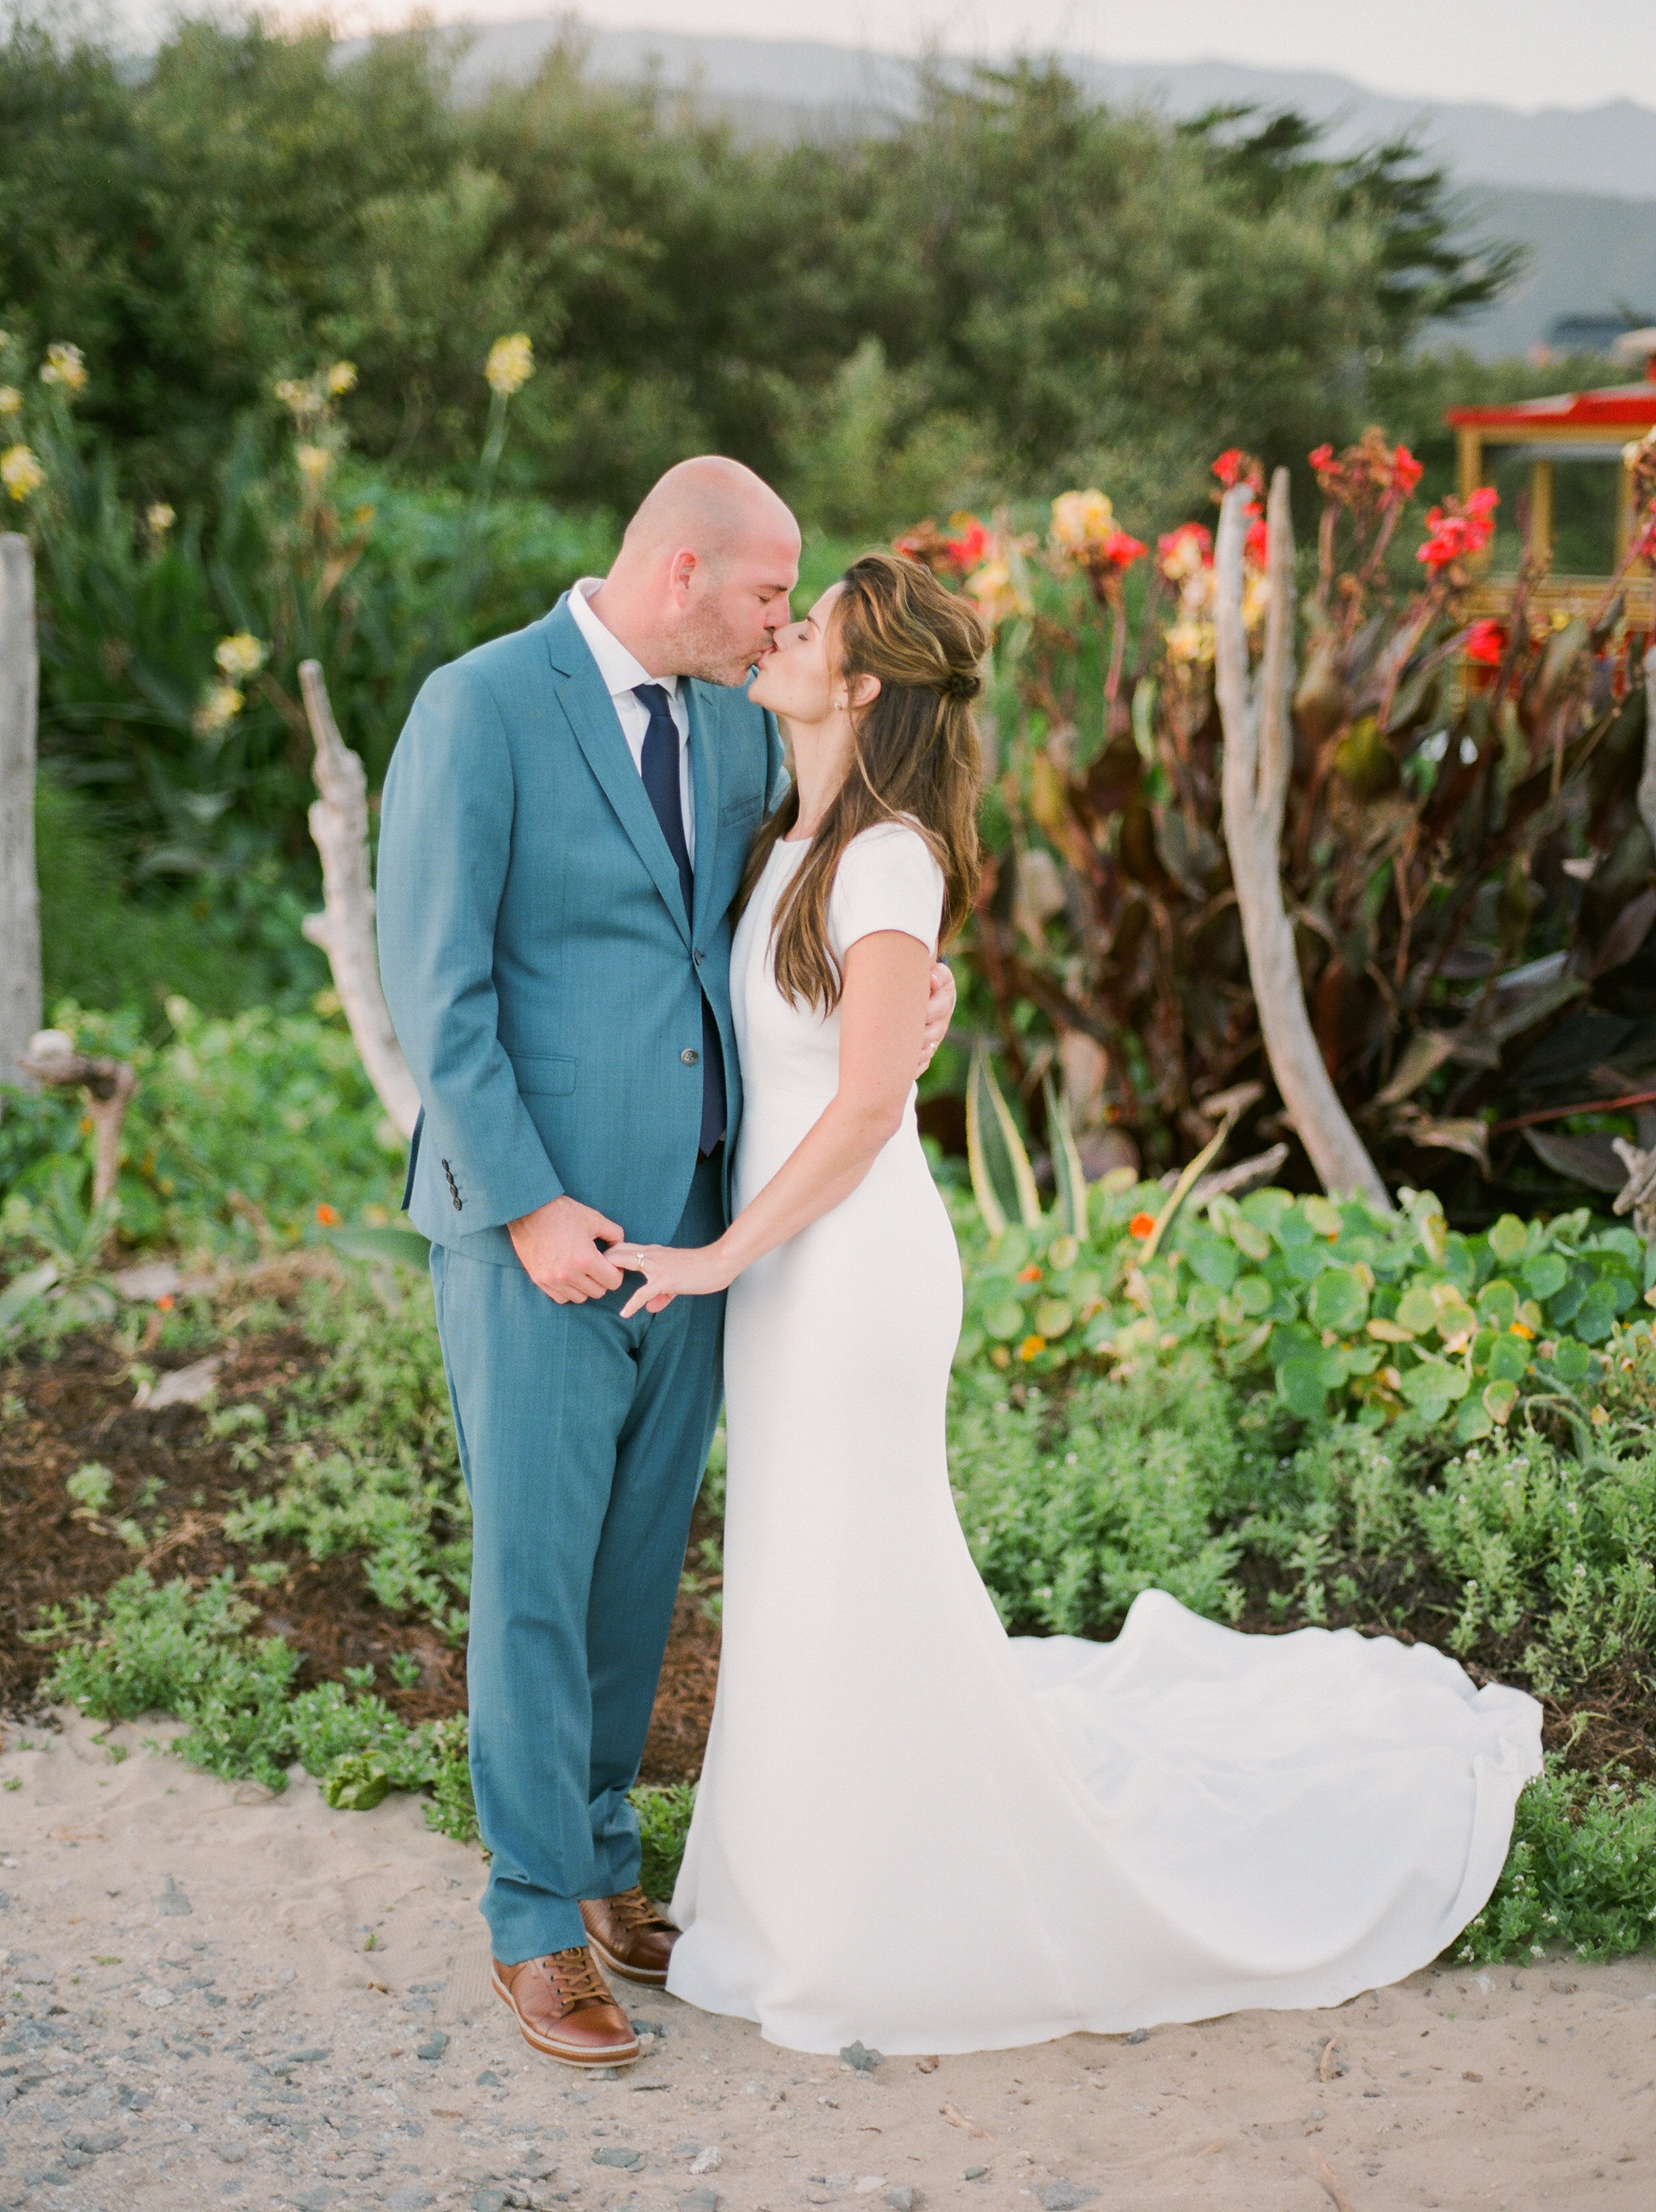 Film-Wedding-Carpinteria-4.jpg